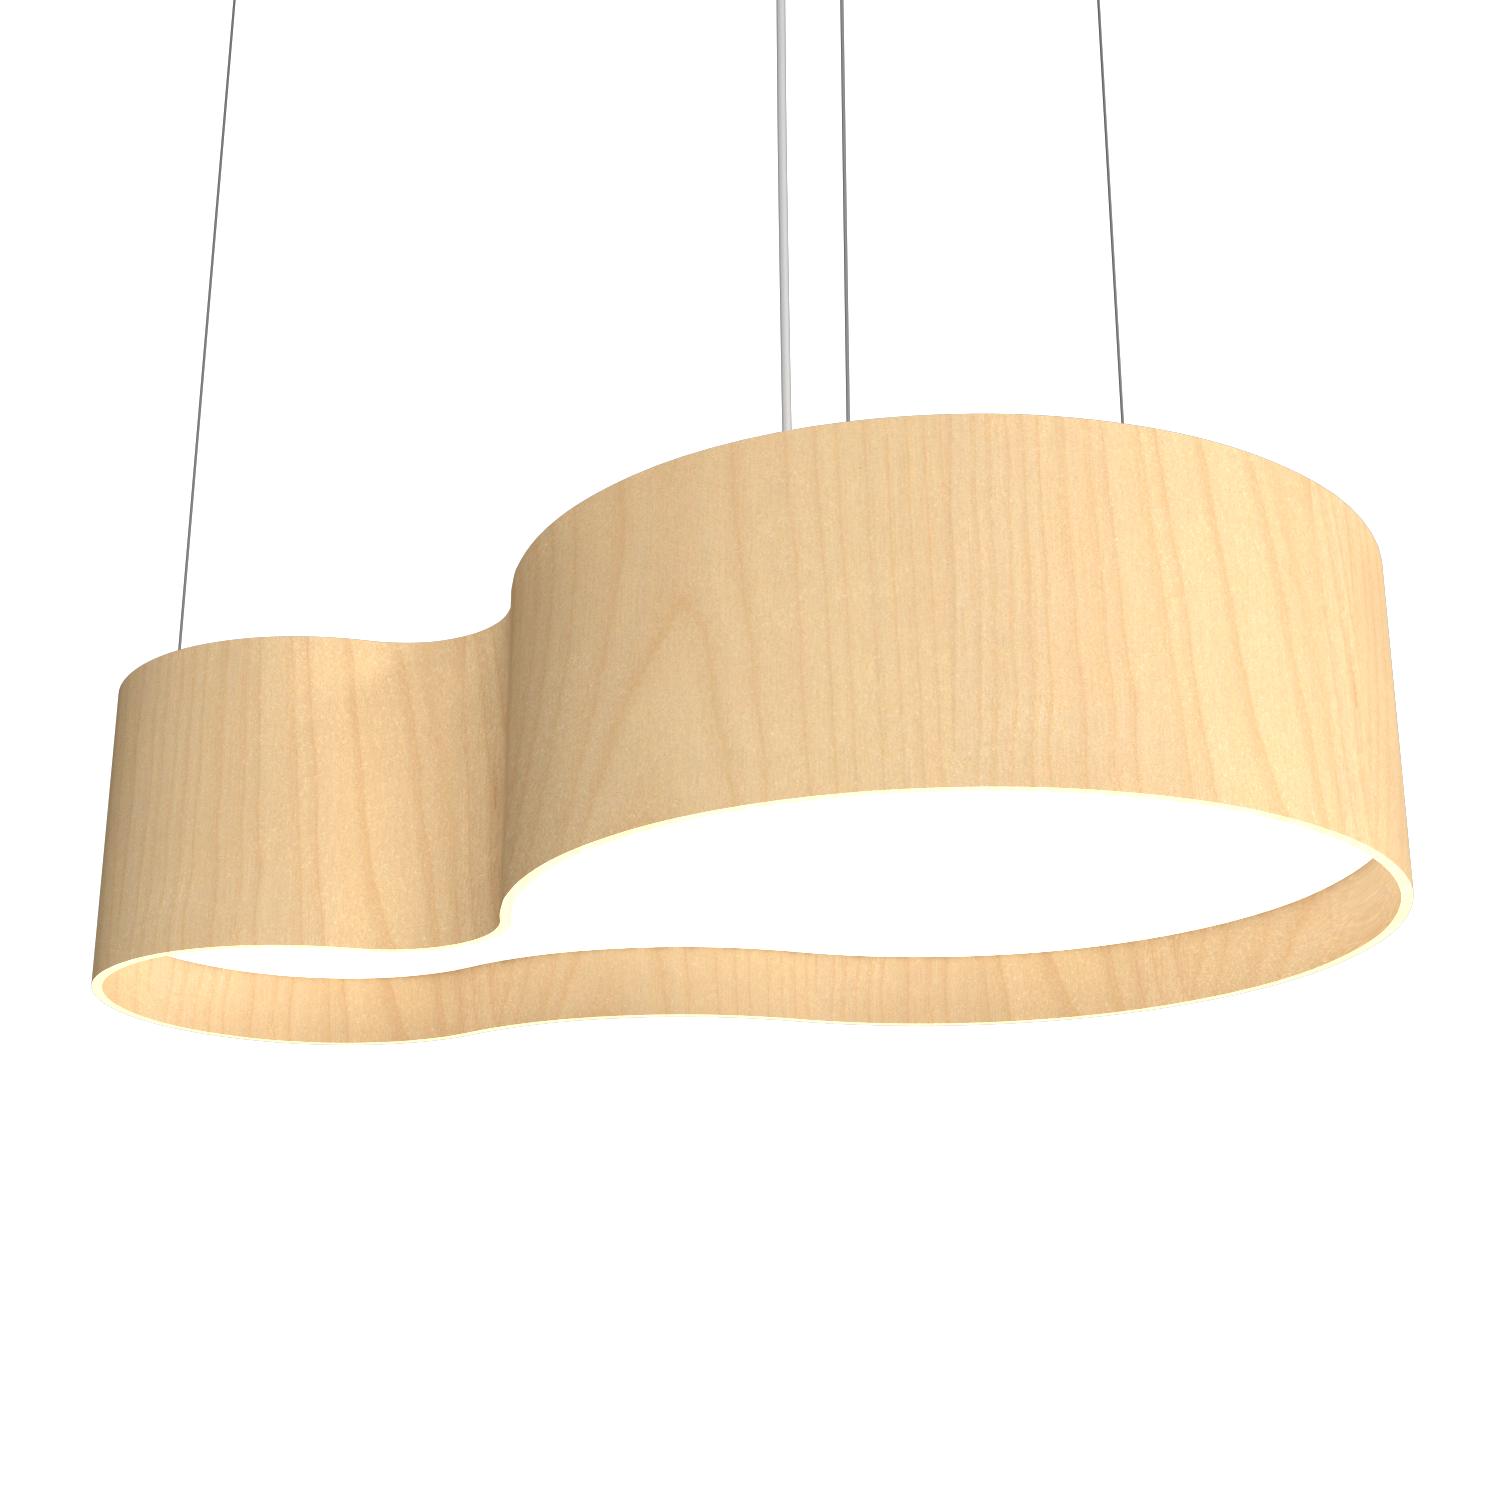 Pendant Lamp Accord Orgânico 285 - Orgânica Line Accord Lighting | 34. Maple